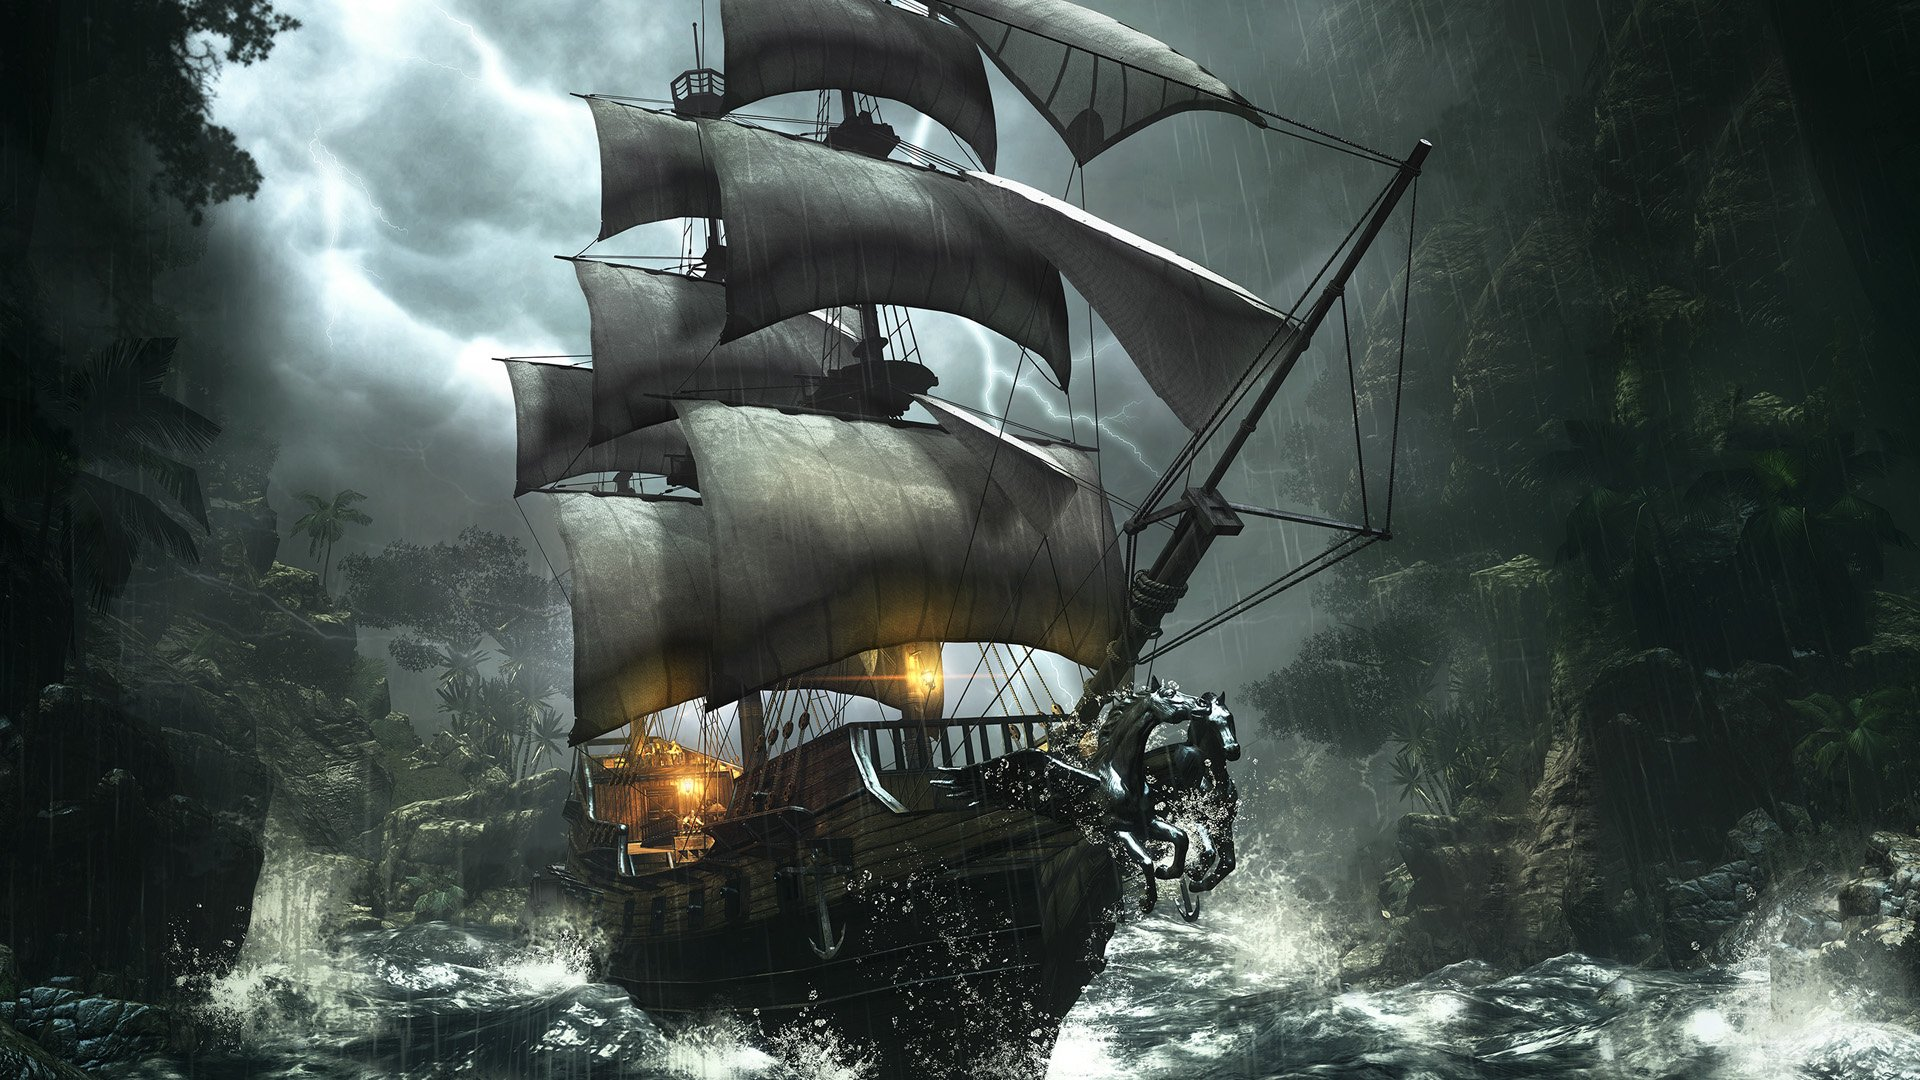 Pirates images Pirate Ship HD wallpaper and background photos 1920x1080